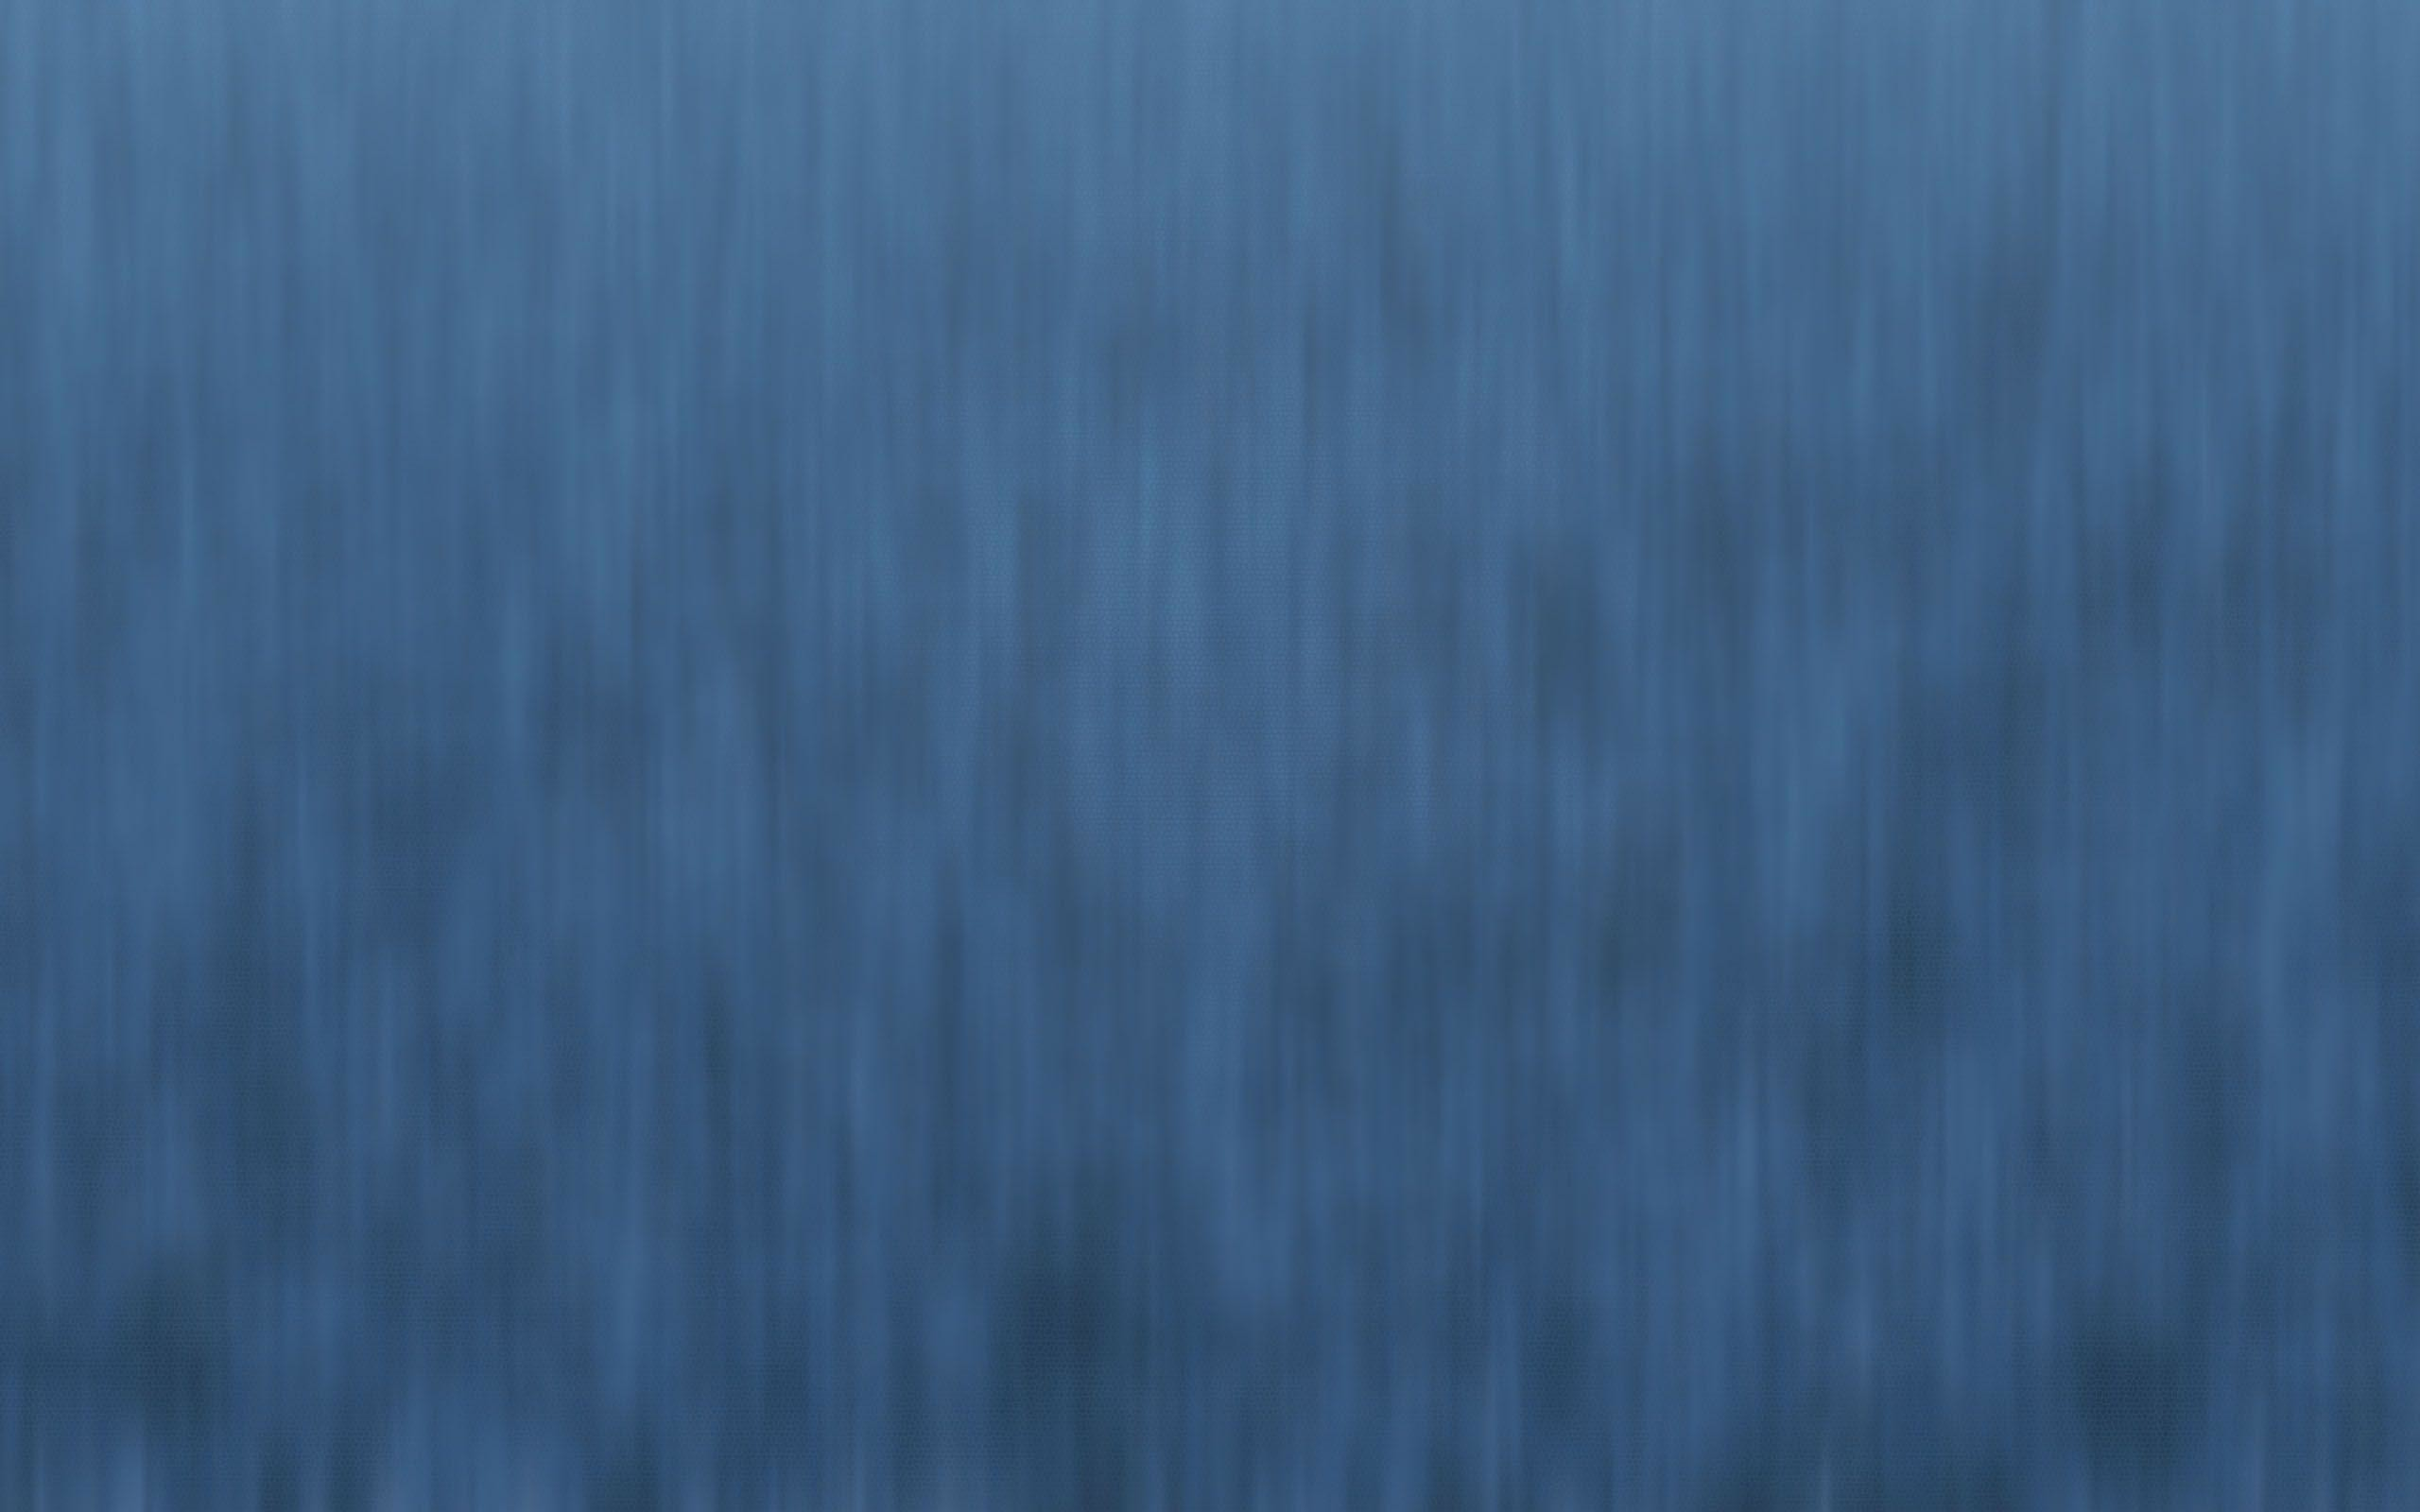 2560x1600 Simple Dark Blue Wallpapers Hd 1080P 11 HD Wallpapers | Hdimges.